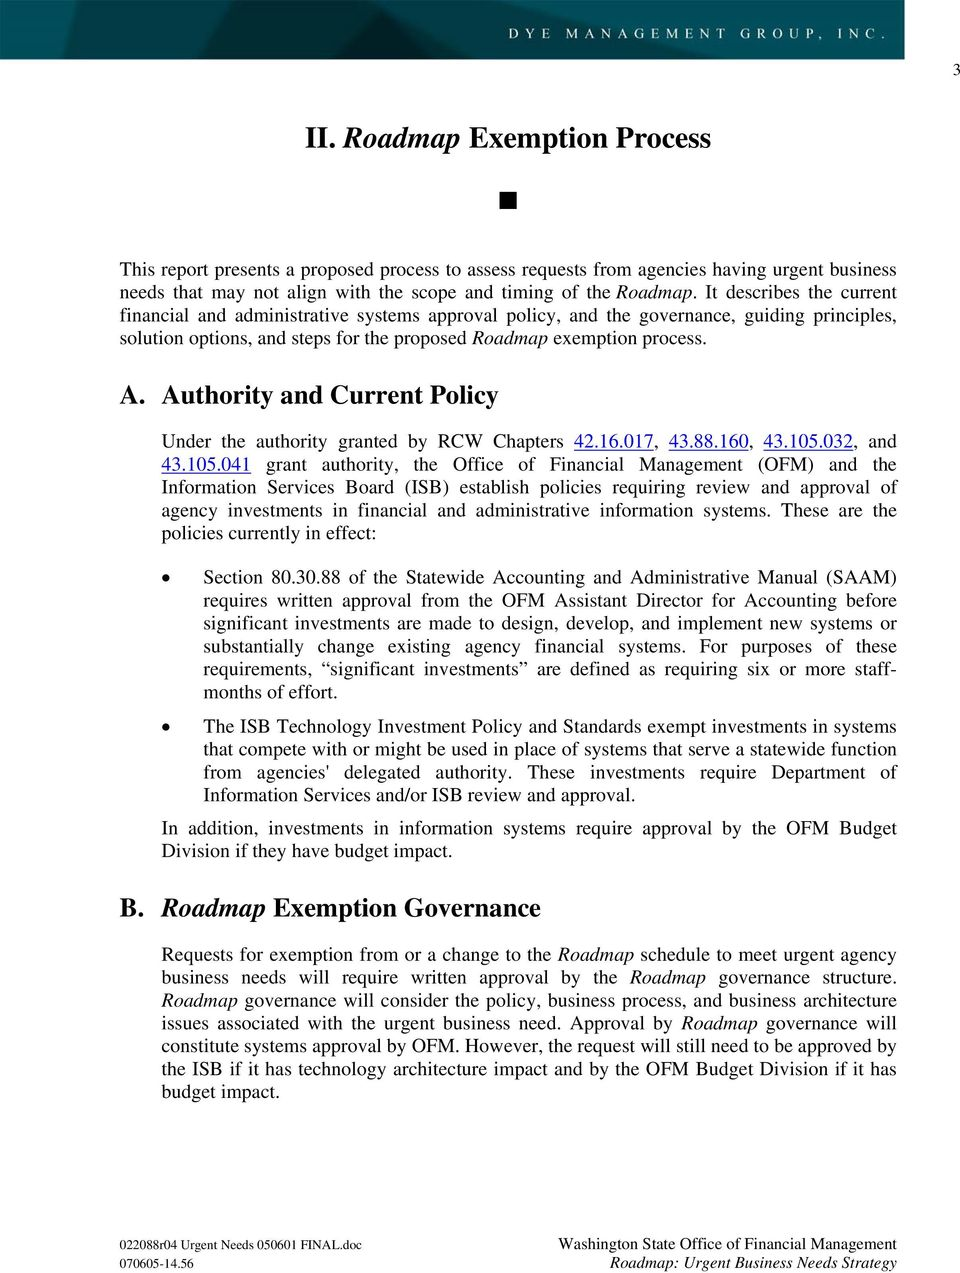 Authority and Current Policy Under the authority granted by RCW Chapters 42.16.017, 43.88.160, 43.105.